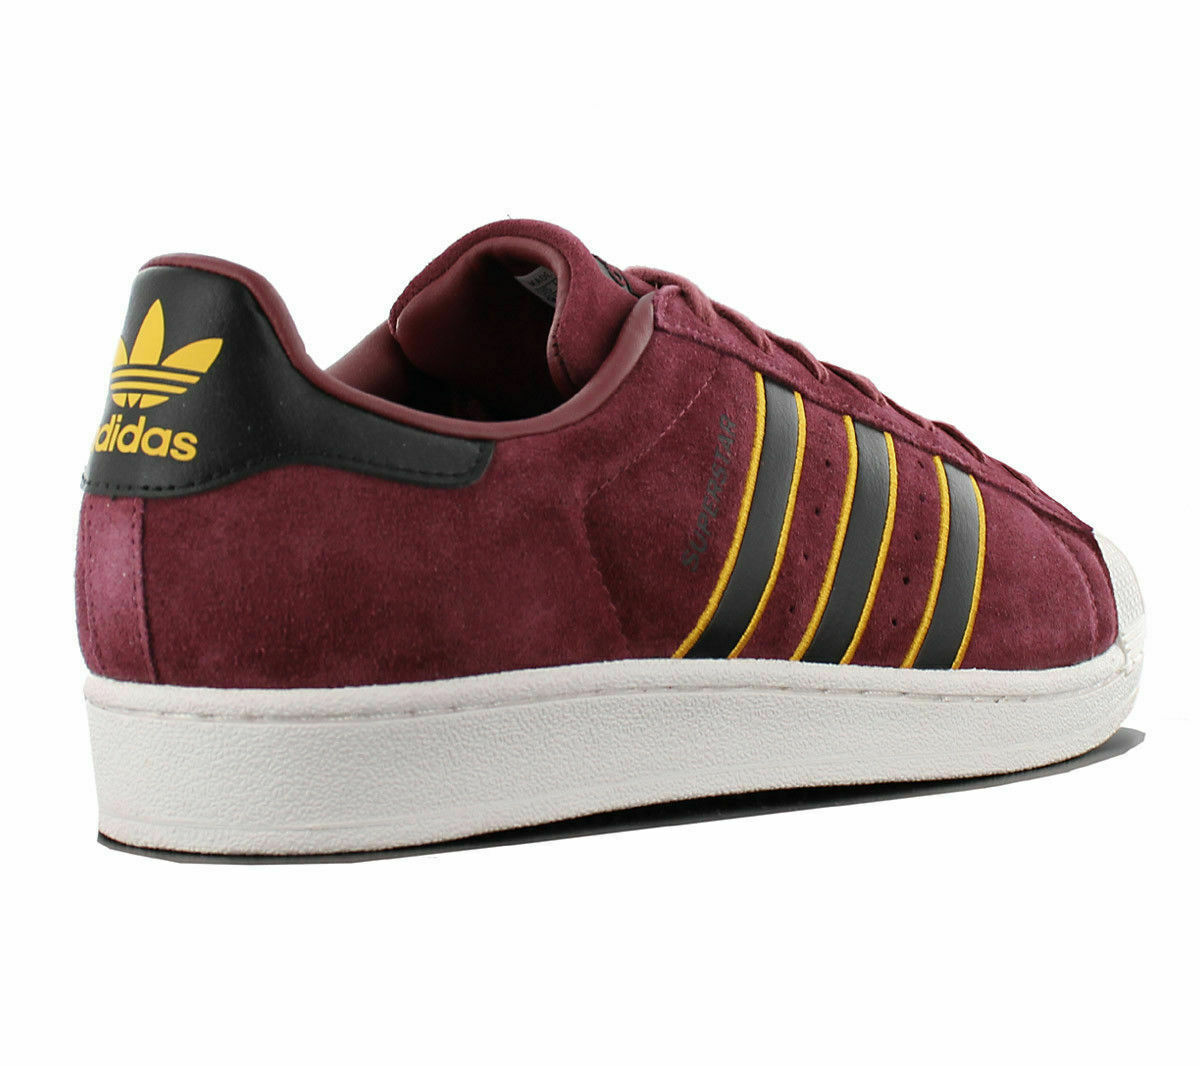 ADIDAS ORIGINAL SUPERSTAR SHELL SHELL SHELL SNEAKER MEN SHOES RED BLACK CM8079 SIZE 11 NEW 7622c3